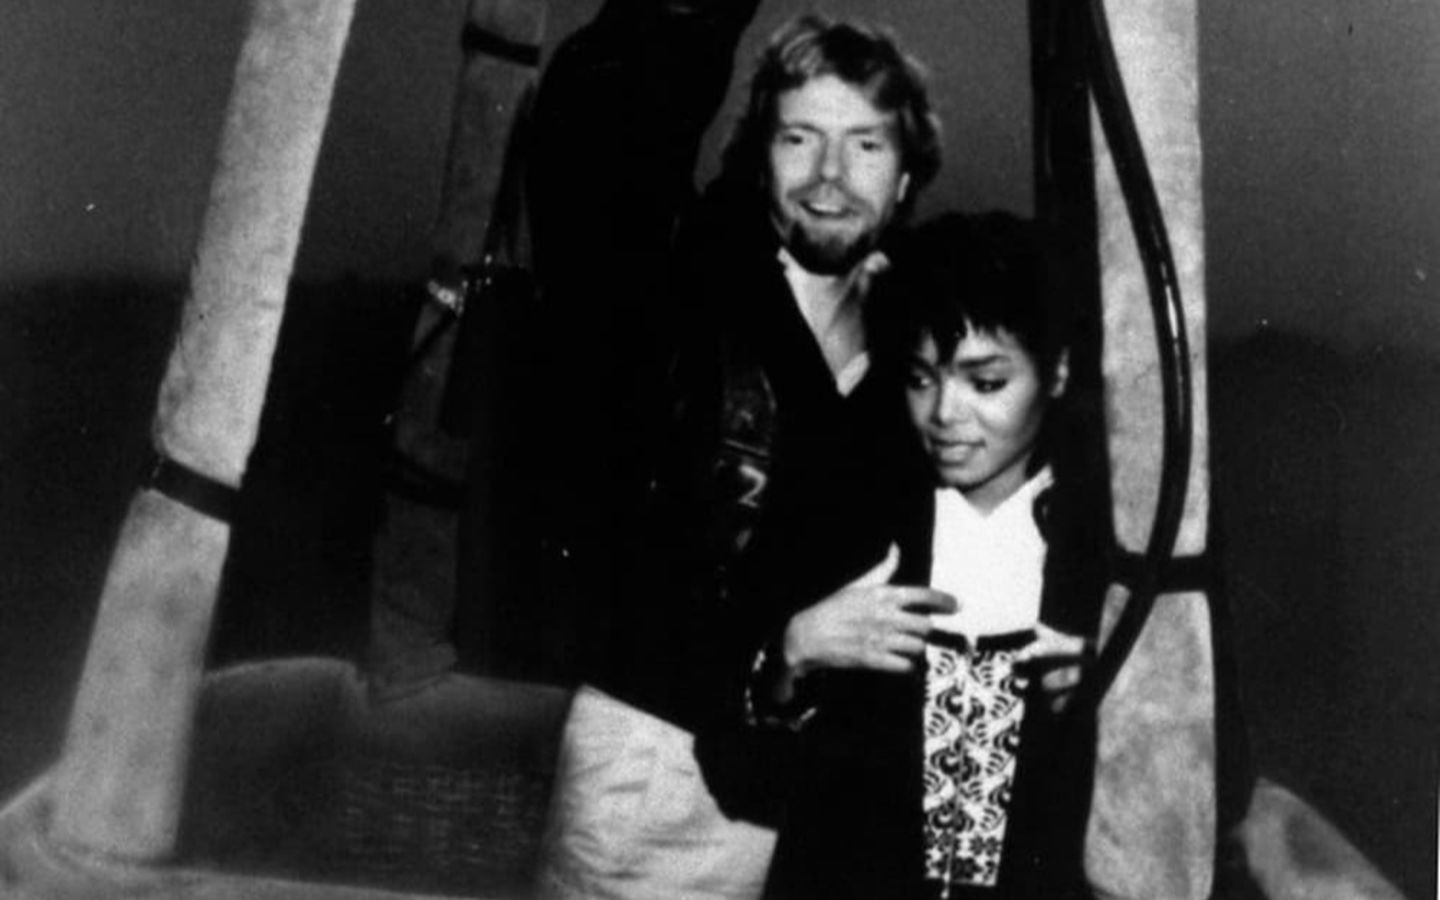 A black and white photo of a young Richard Branson with Janet Jackson, in the basket of a Virgin Balloon